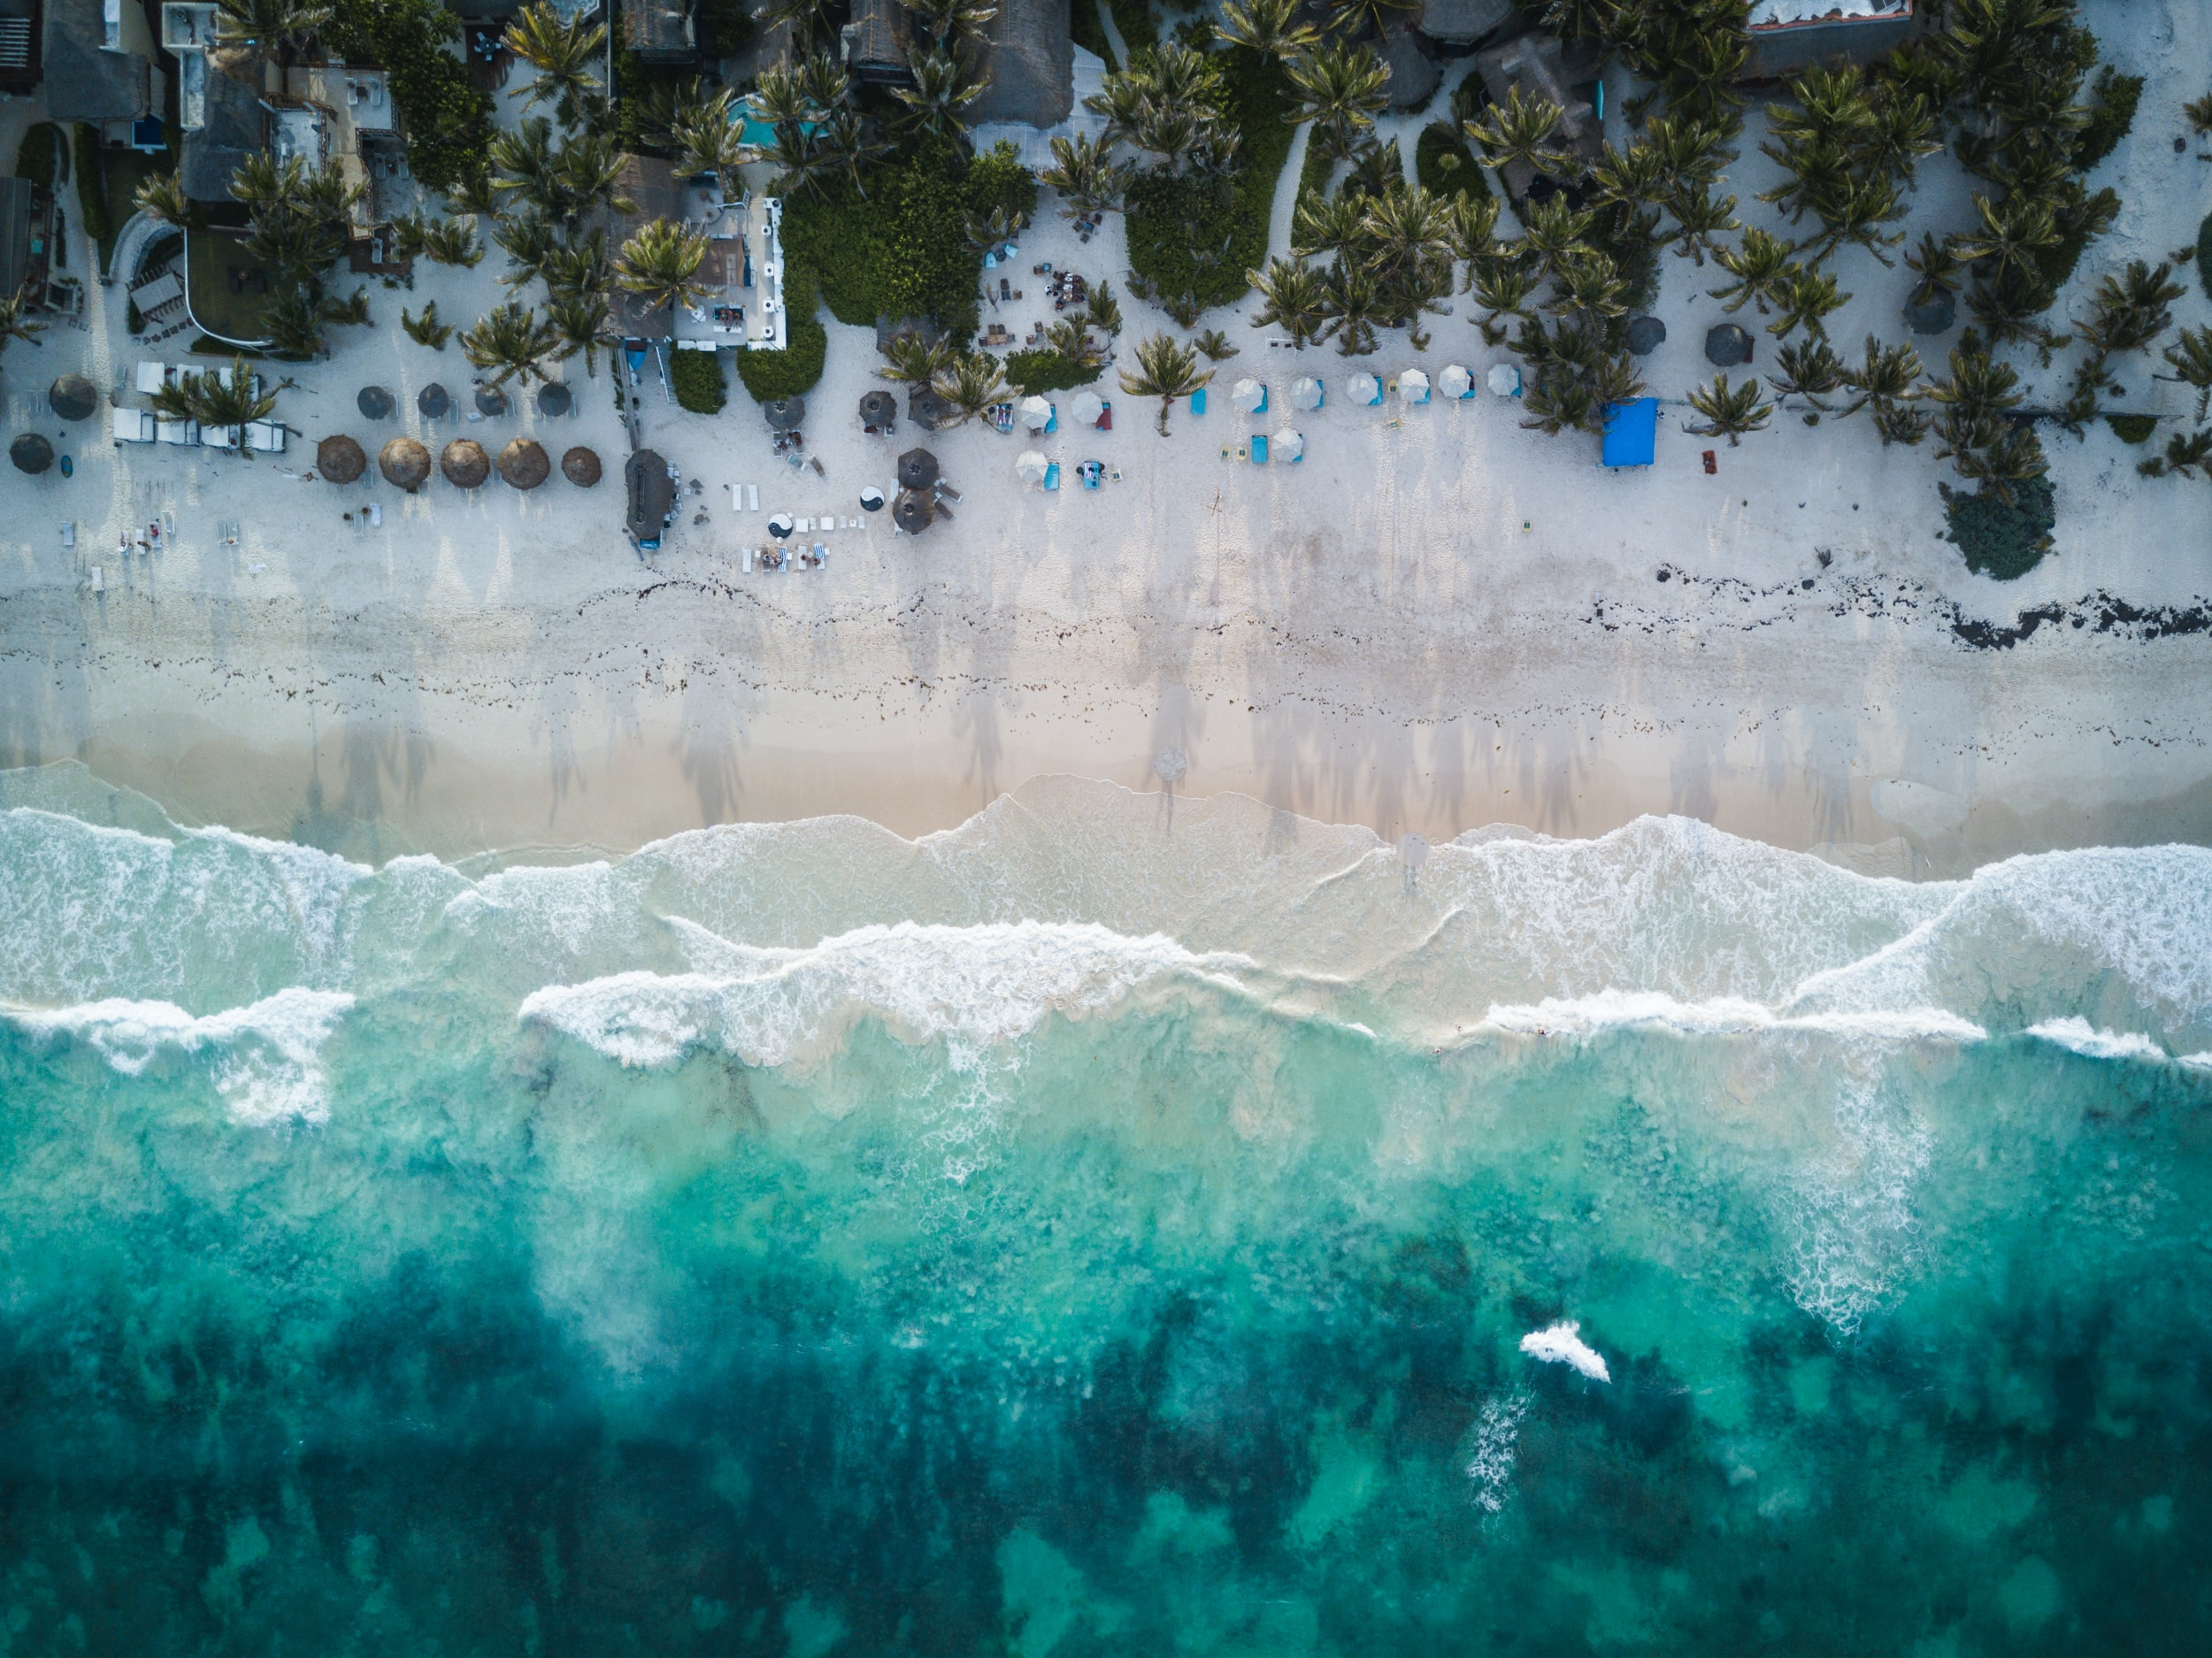 VISIT TULUM WITH A POSITIVE IMPACT